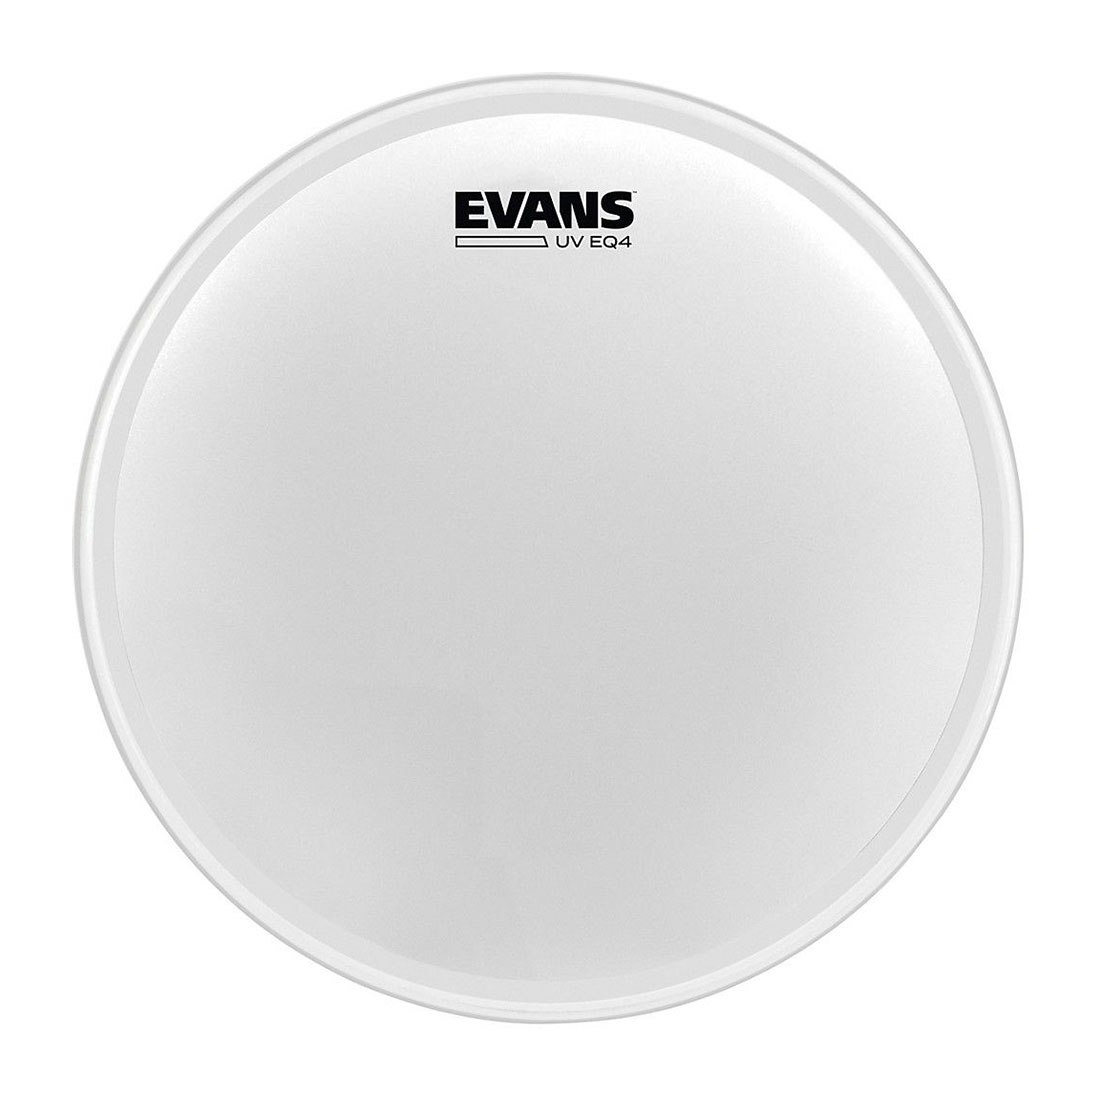 "Evans 18"" UV EQ4 Coated Bass Drum Head"